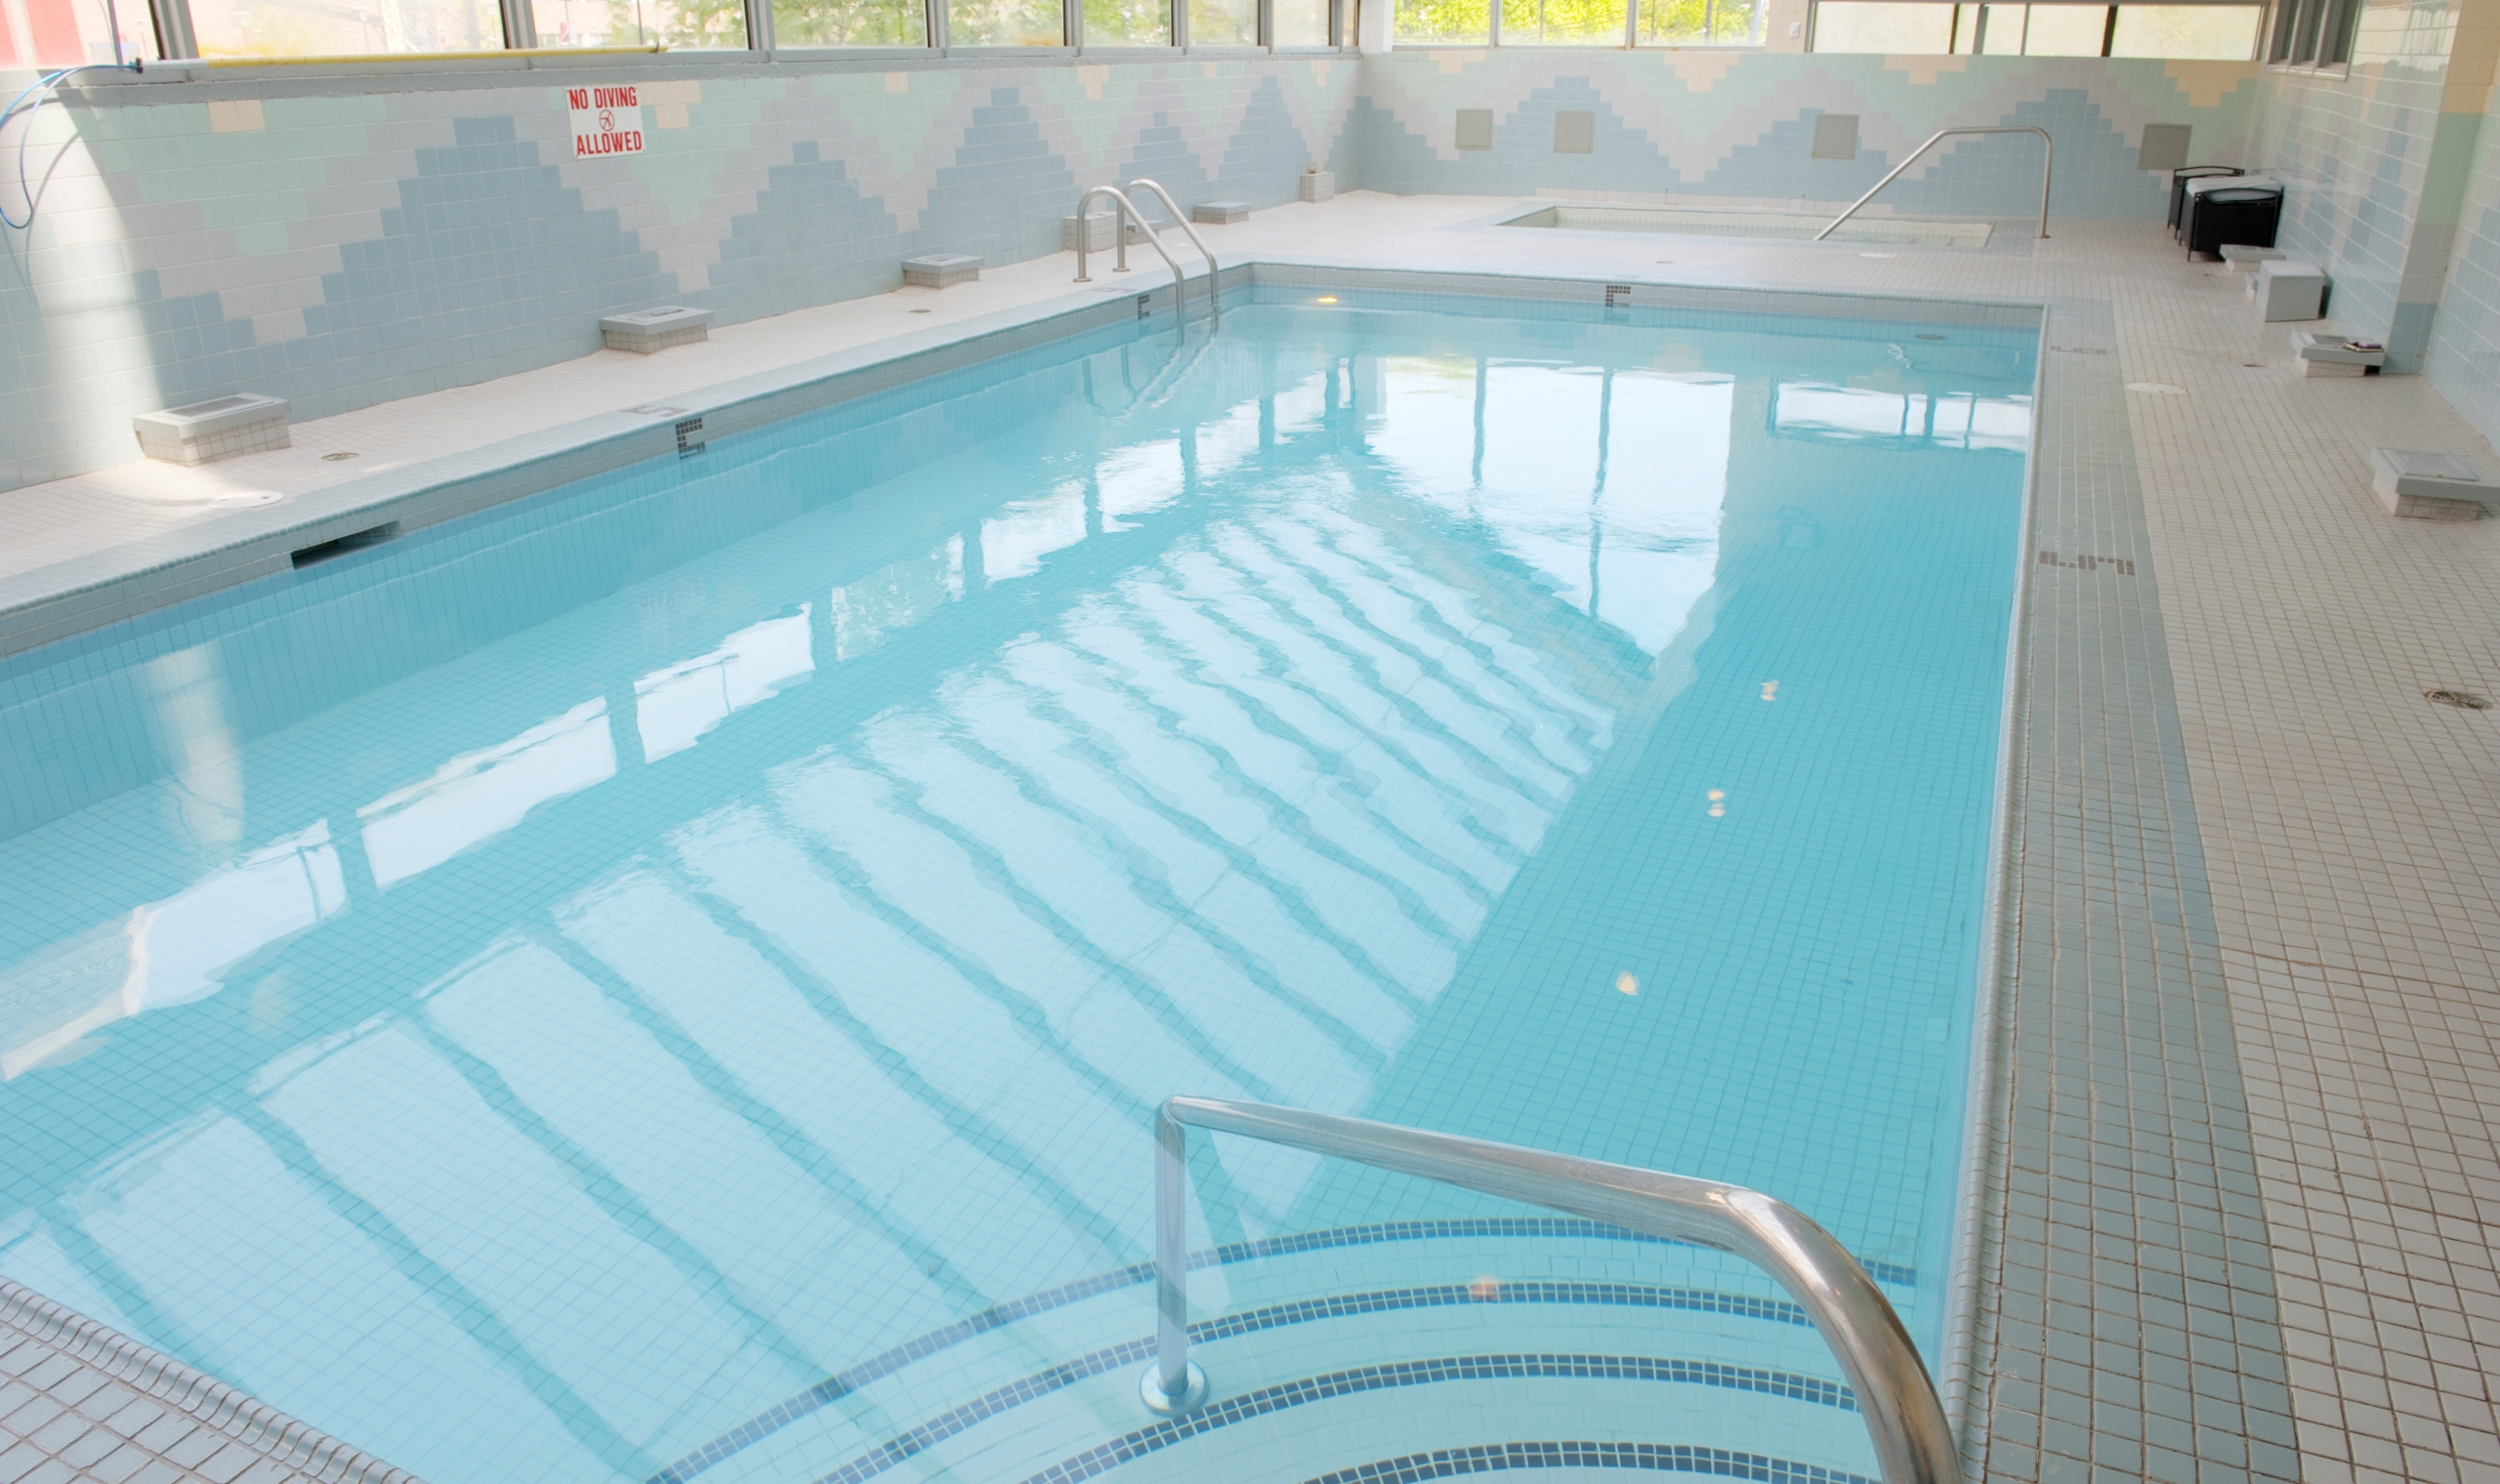 Sandman hotel vancouver city centre vancouver canadian affair for Indoor swimming pools vancouver